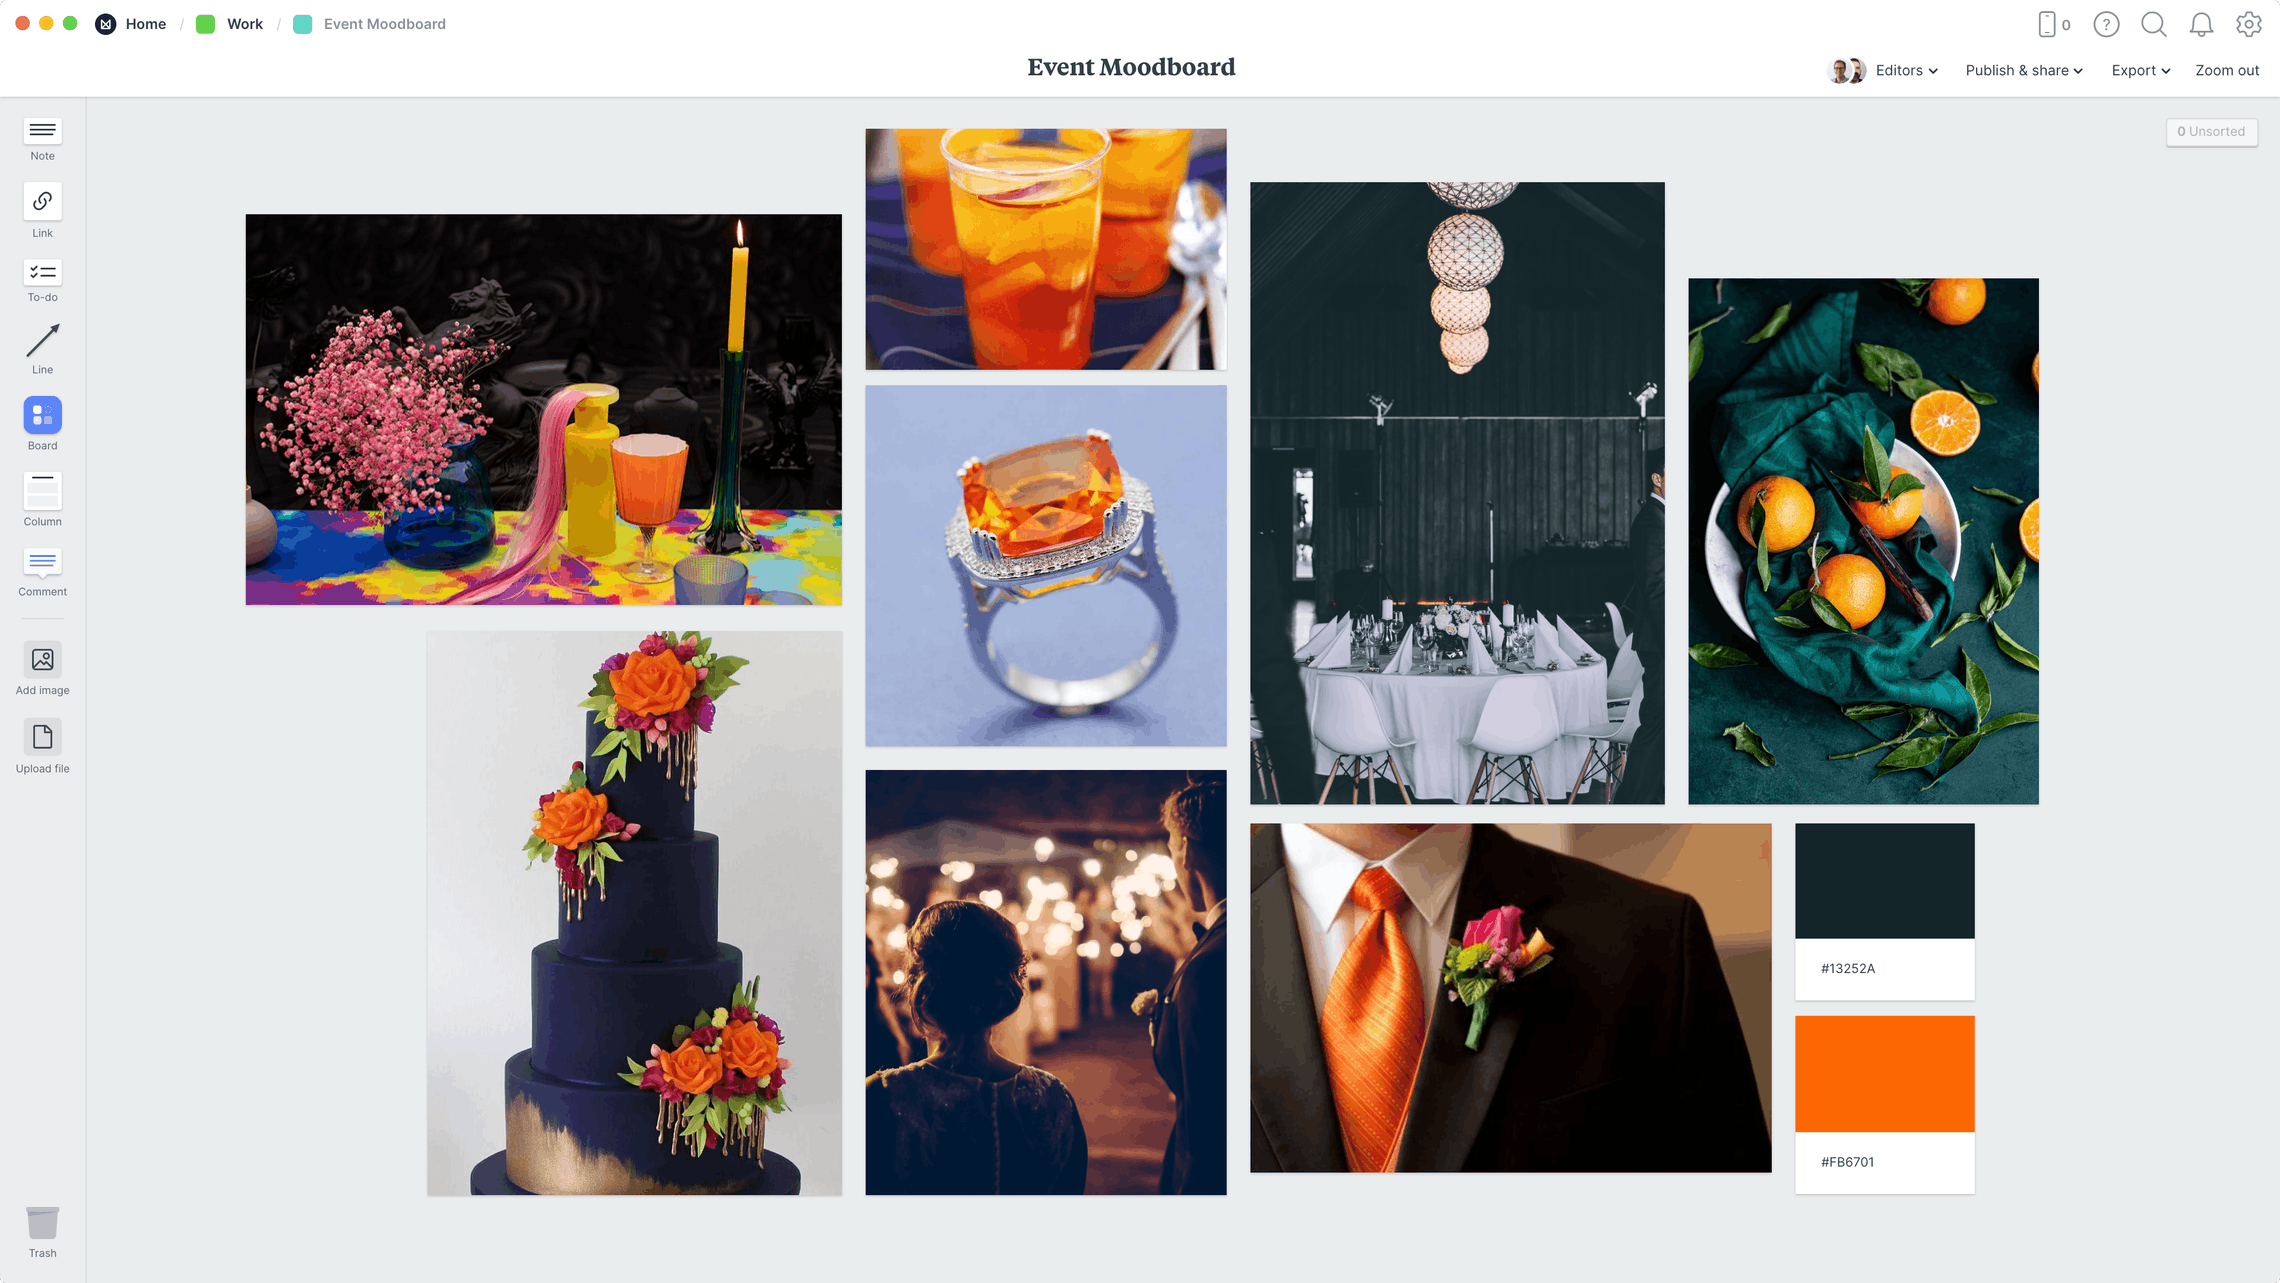 Event Moodboard Template, within the Milanote app